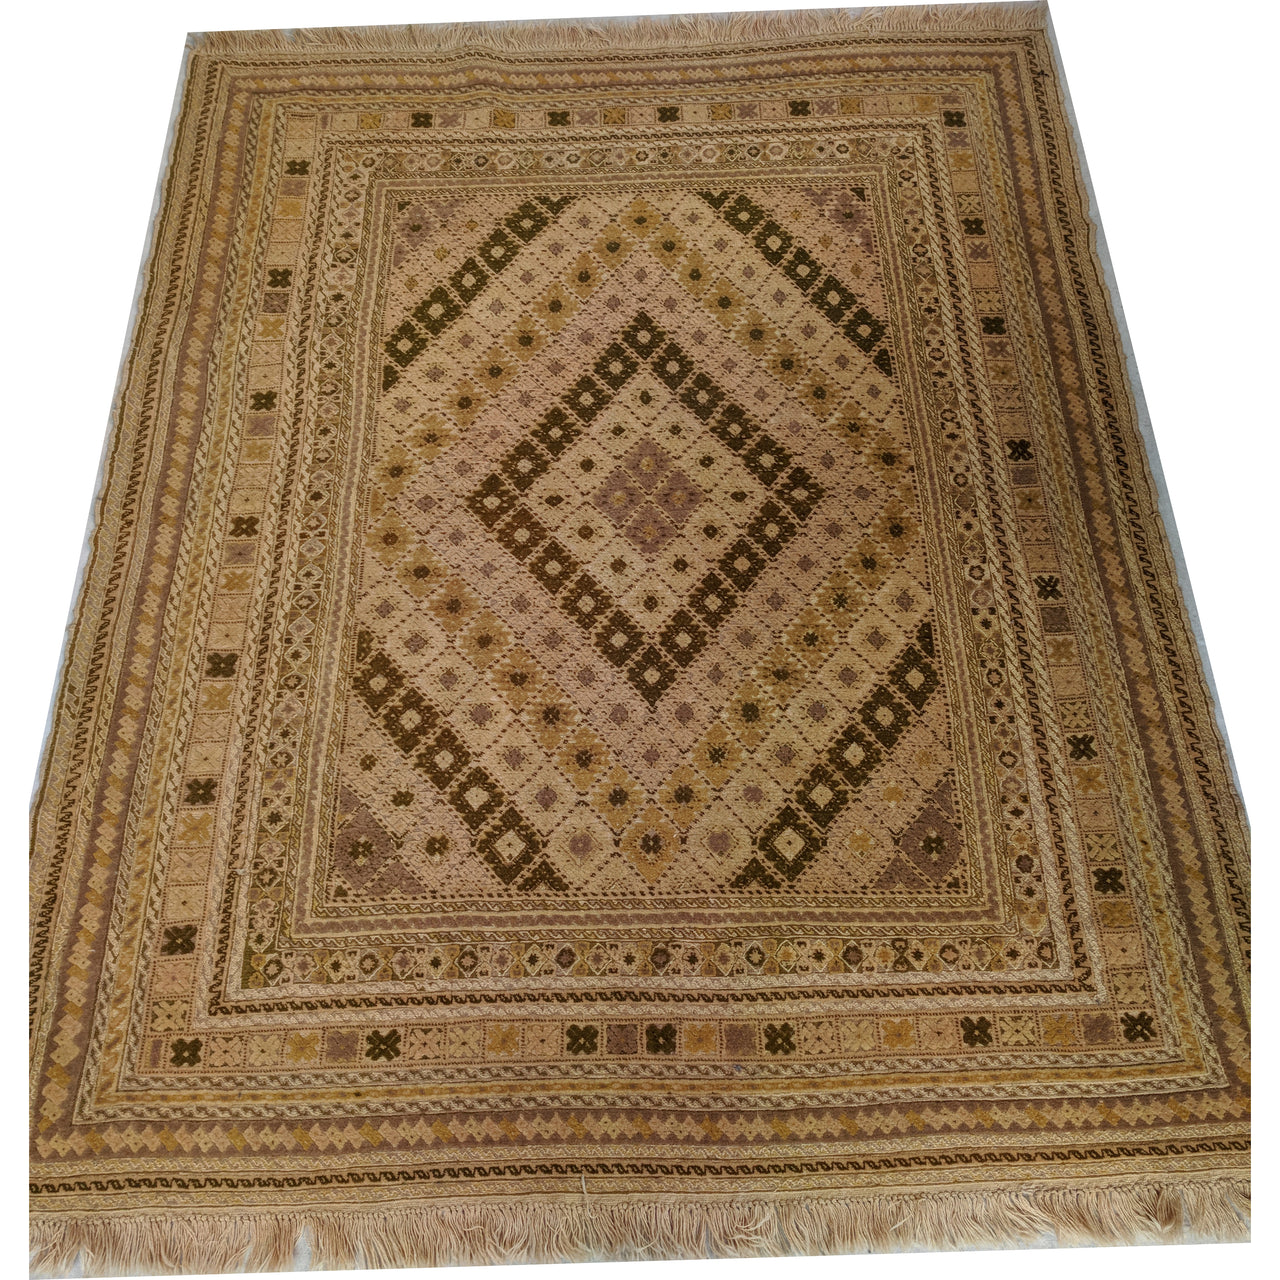 Vintage Hand Knotted 100% Wool Golden Rug at The Design Ark Antiques Kingsford Sydney